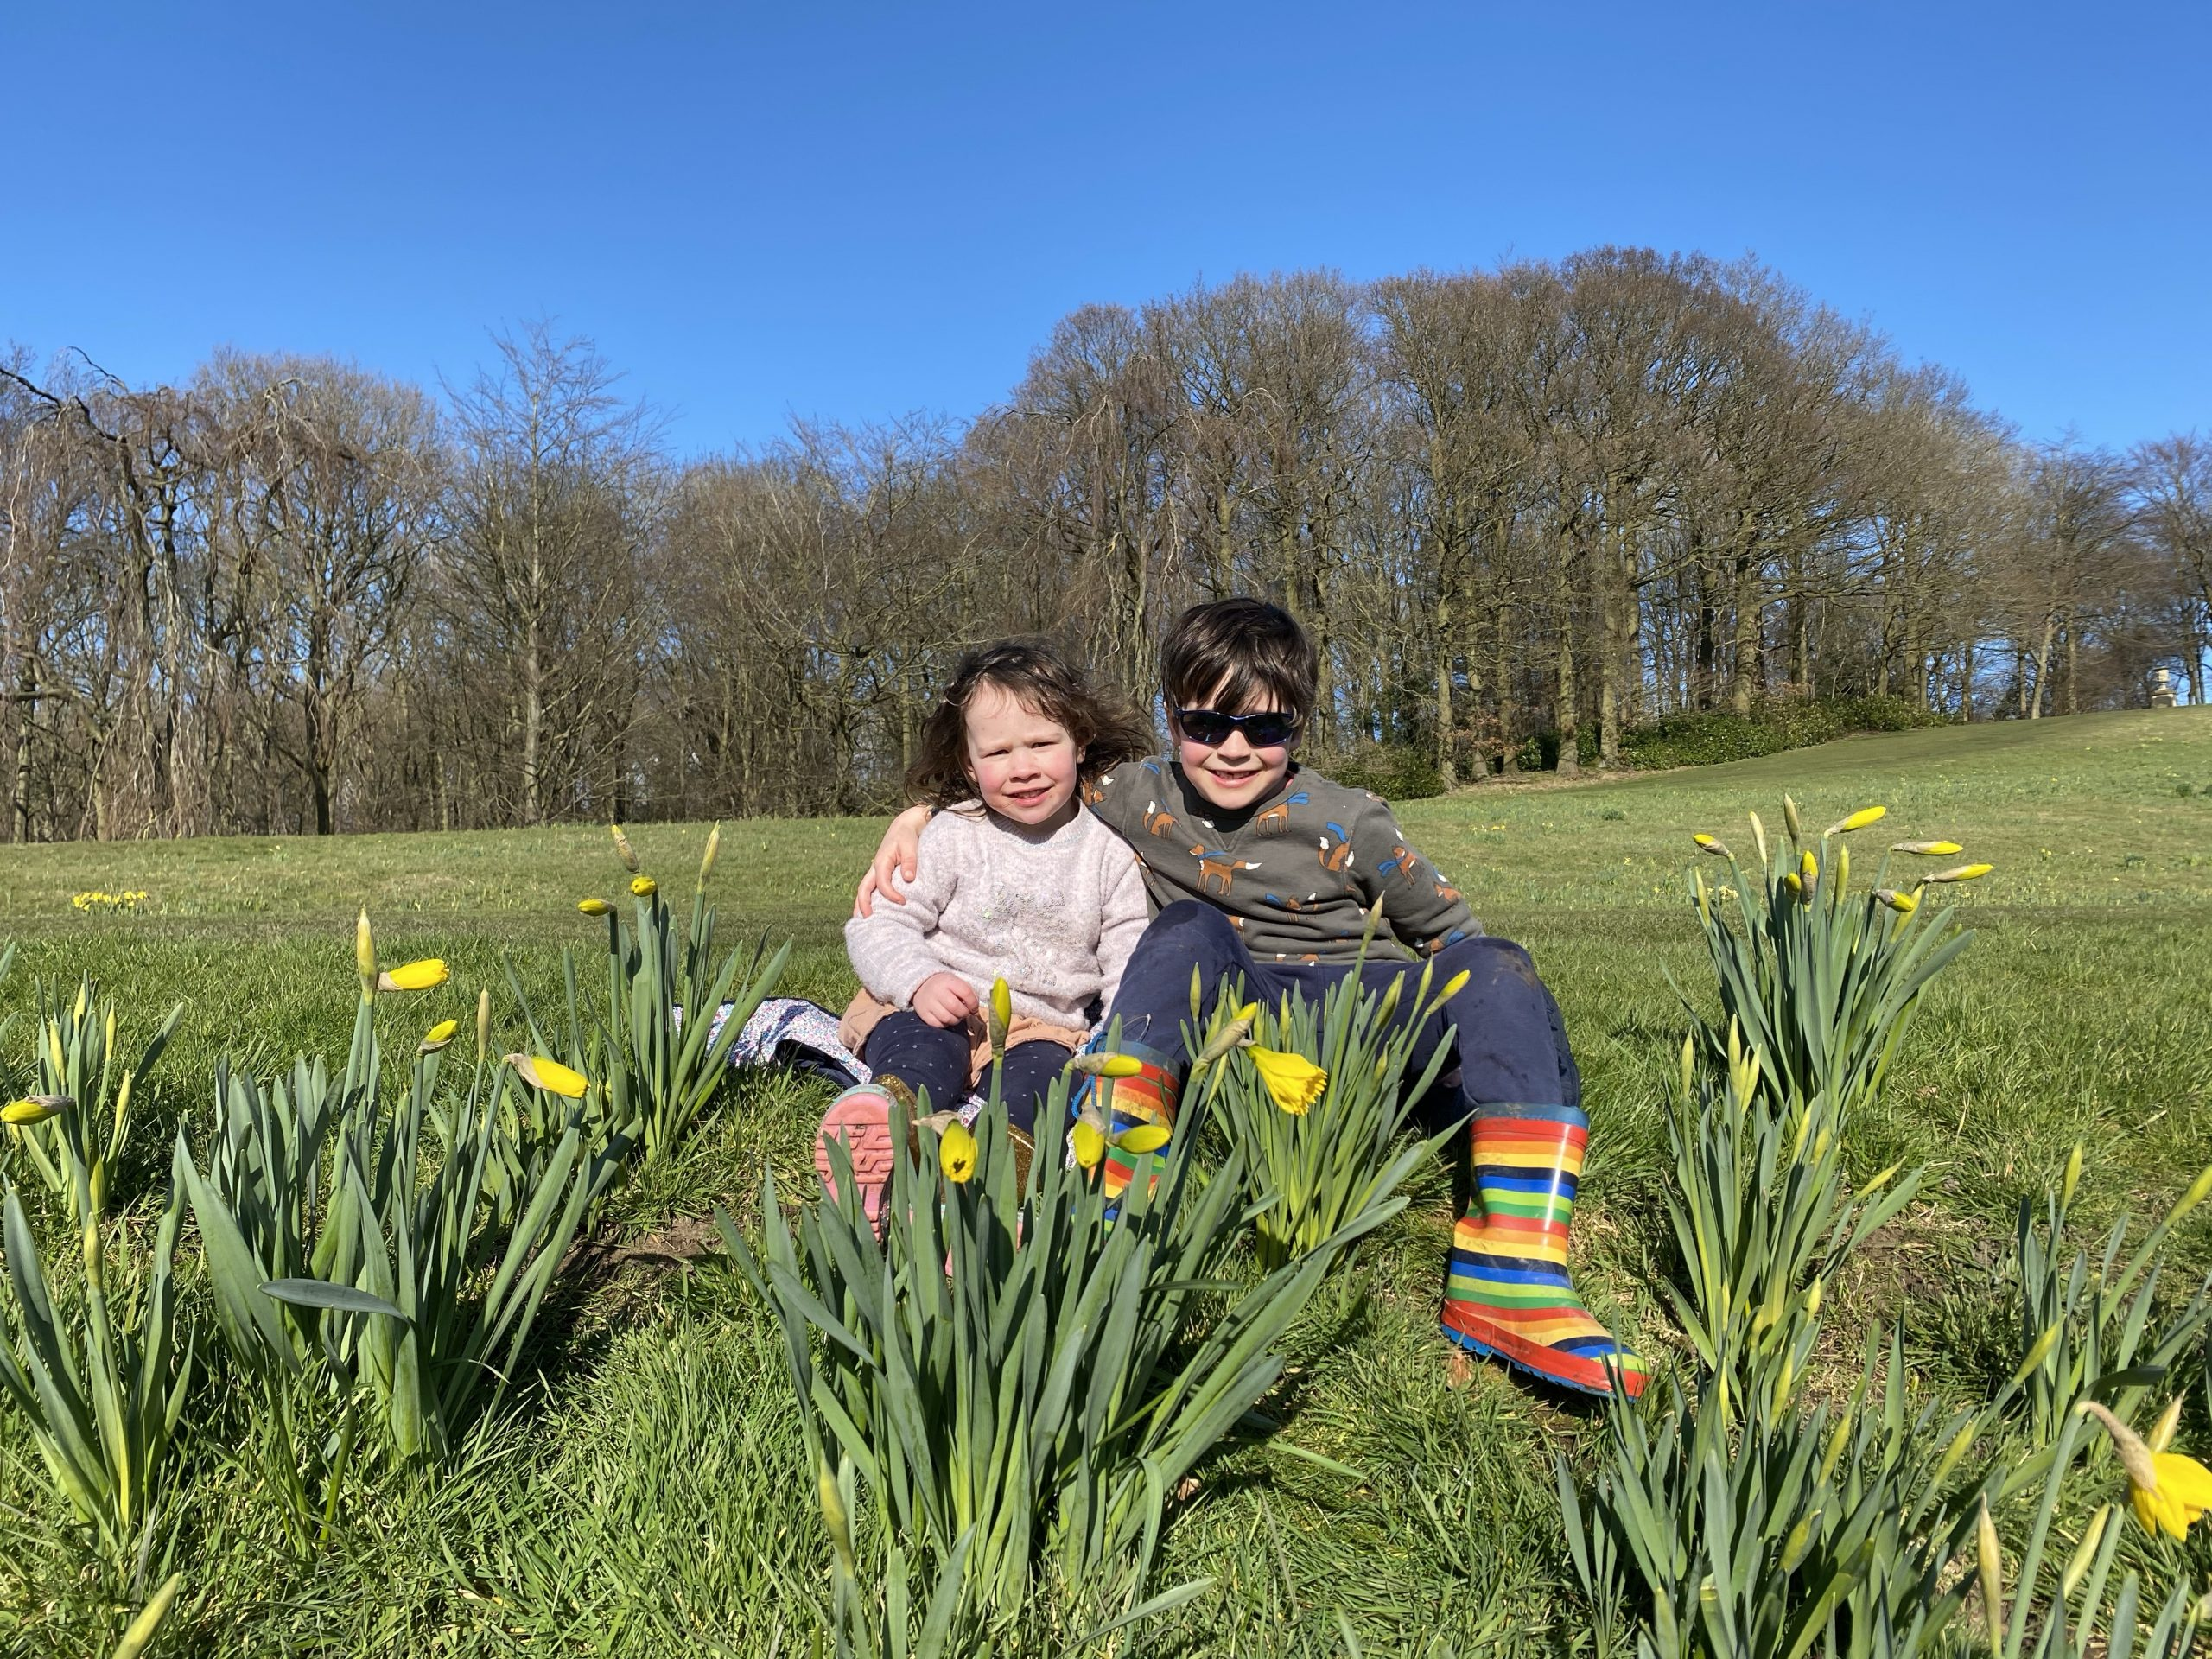 family life with two children sat by daffodils